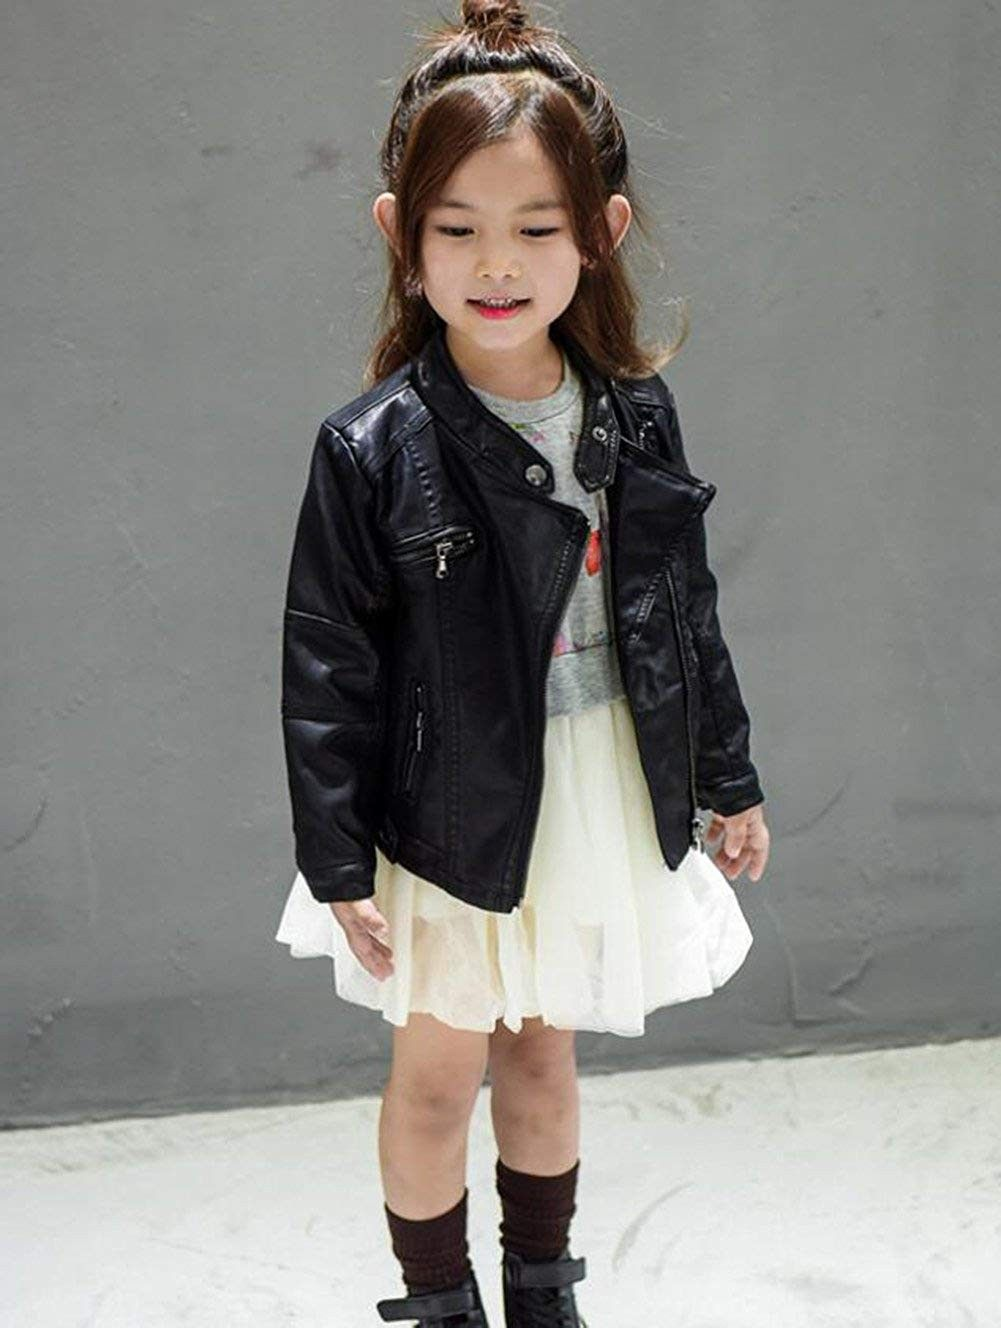 Kids Girl Faux Leather Jacket Coat Long Sleeve Moto Jacket Casual Pu Coats Black C8188t7xd7q Girls Clothing Online Faux Leather Jackets Girl Outfits [ 1328 x 1001 Pixel ]